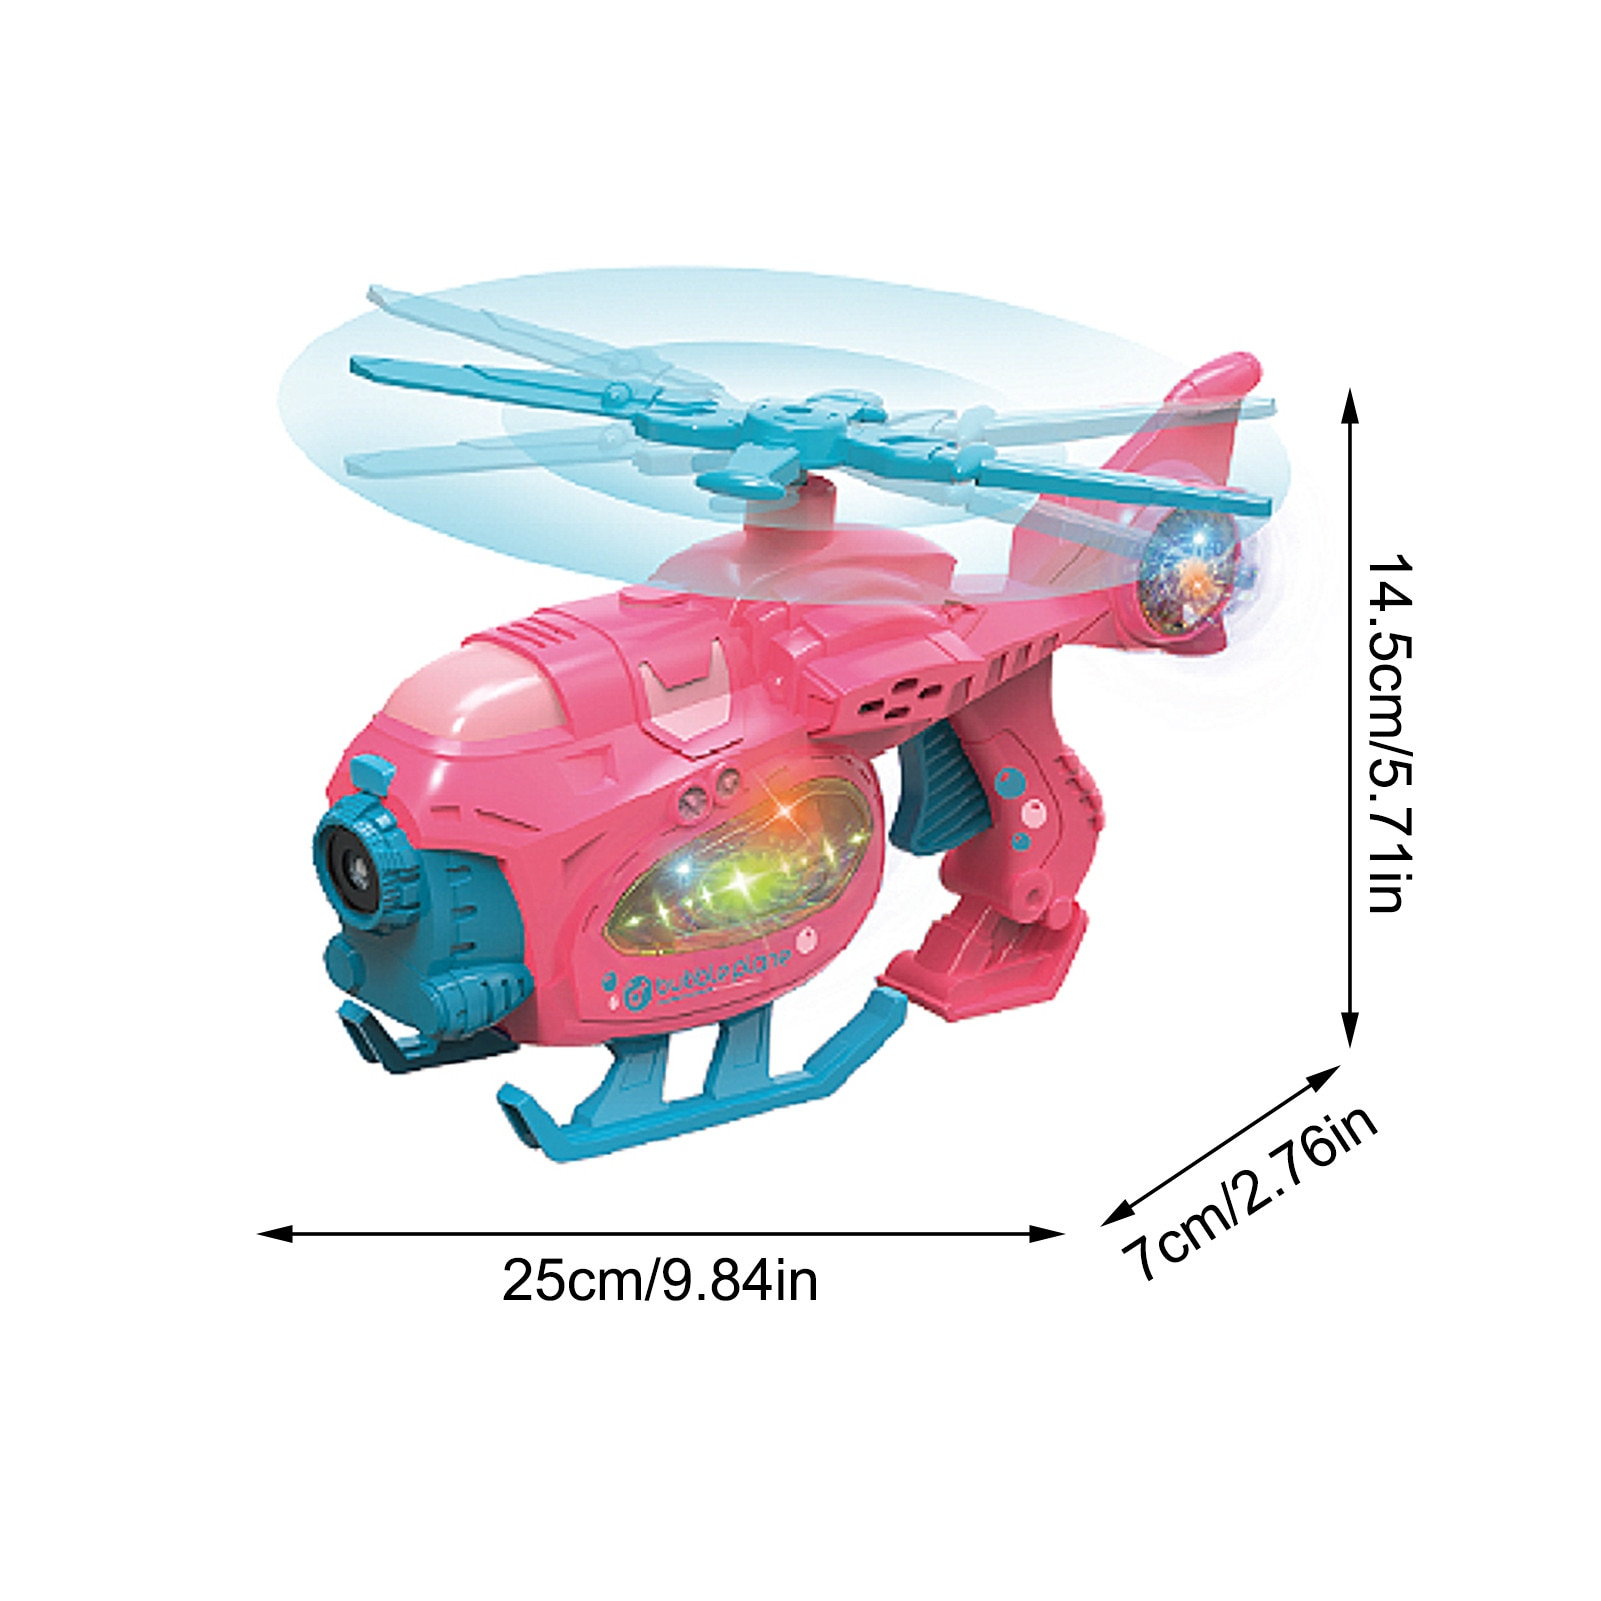 Funny Magic Bubble Blower Machine Music Light Movable Helicopter Bubble Toy Soap Water Outdoor Kids Toy Gift Summer  - buy with discount